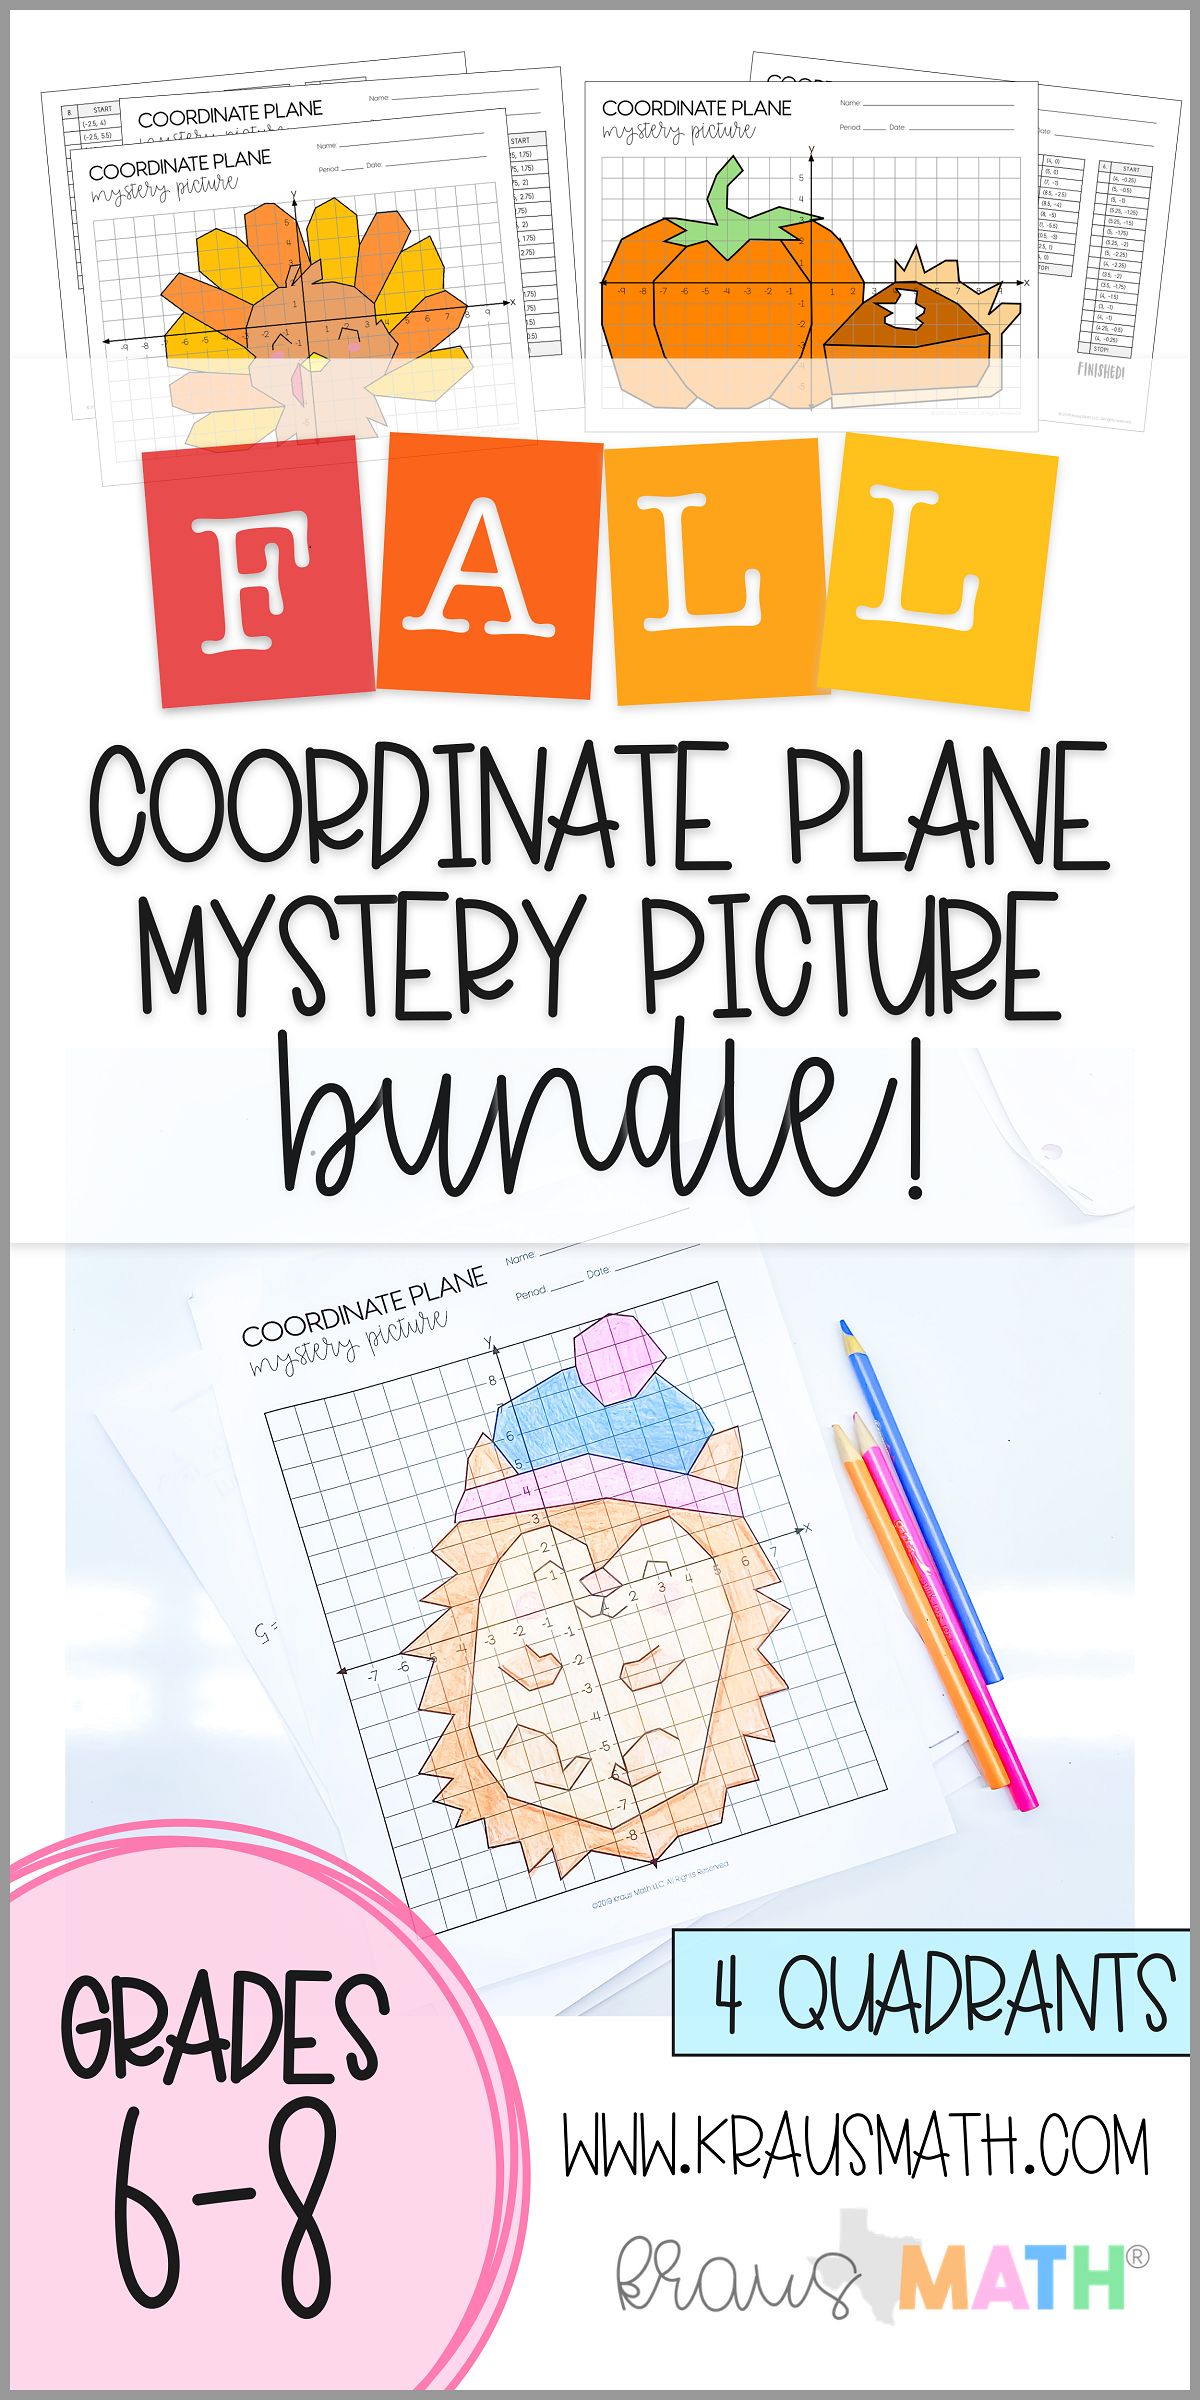 Holiday Coordinate Planes Mystery Picture 4 Quadrants Each Mystery Picture Includes Blank Coordinate Plan 6th Grade Math Games Fun Math Fun Math Activities [ 2400 x 1200 Pixel ]